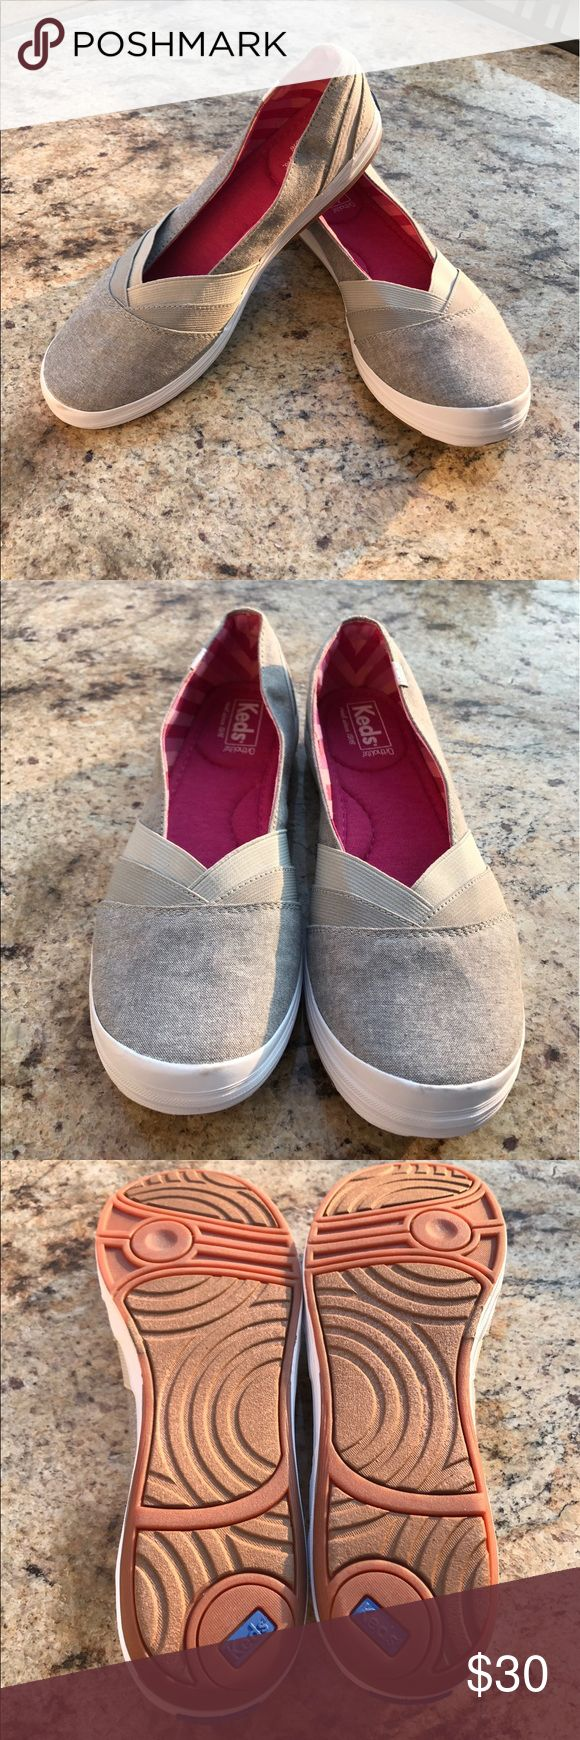 Classic Keds slip ons These are an awesome find! They are in nearly new condition! They will go great with anything!!! Keds Shoes Sneakers